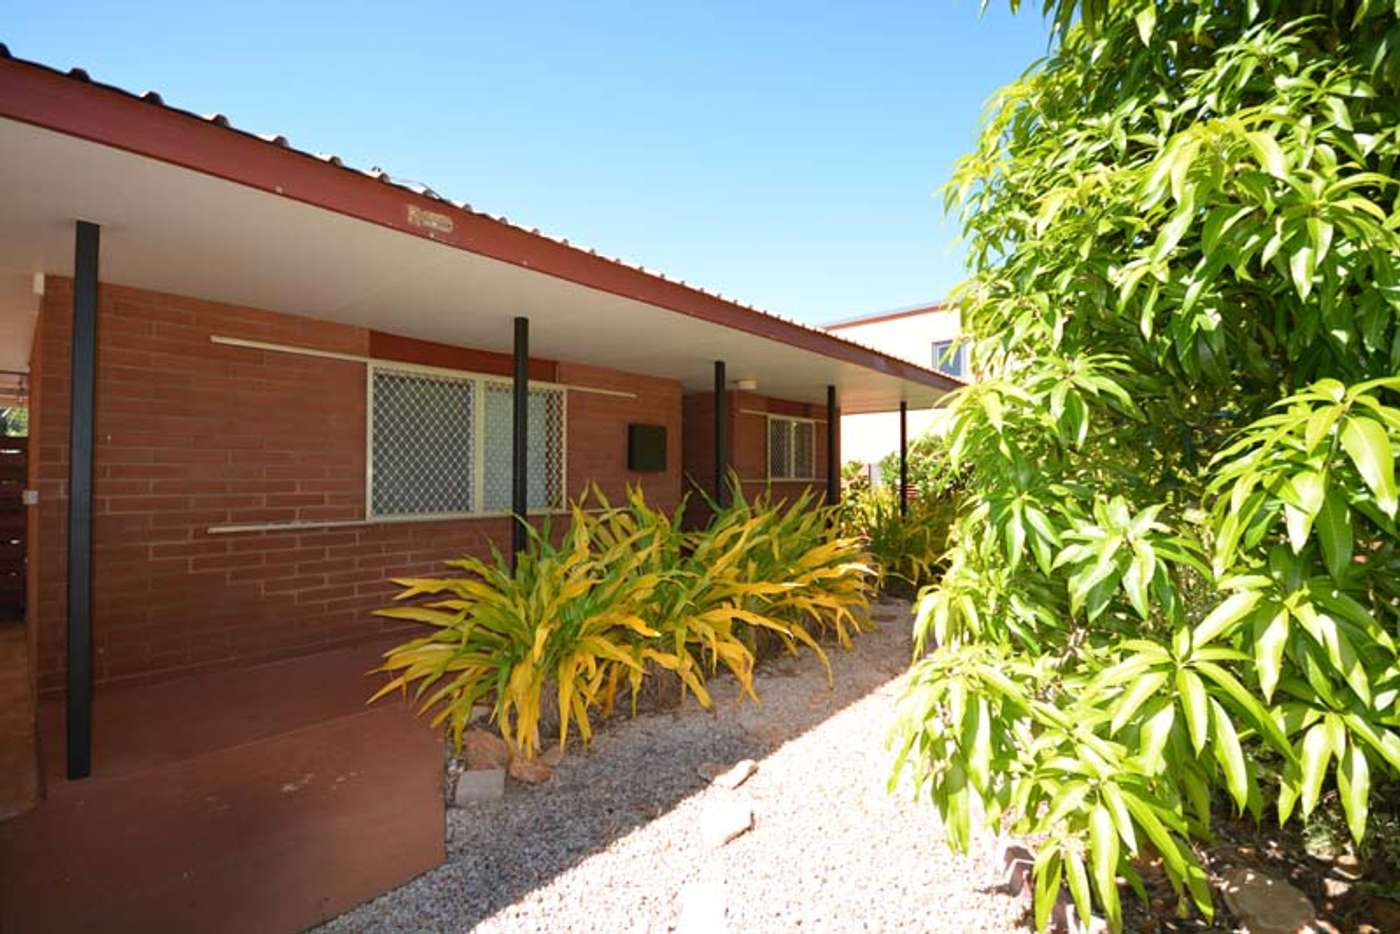 Main view of Homely house listing, 19 Kerr Street, Broome WA 6725